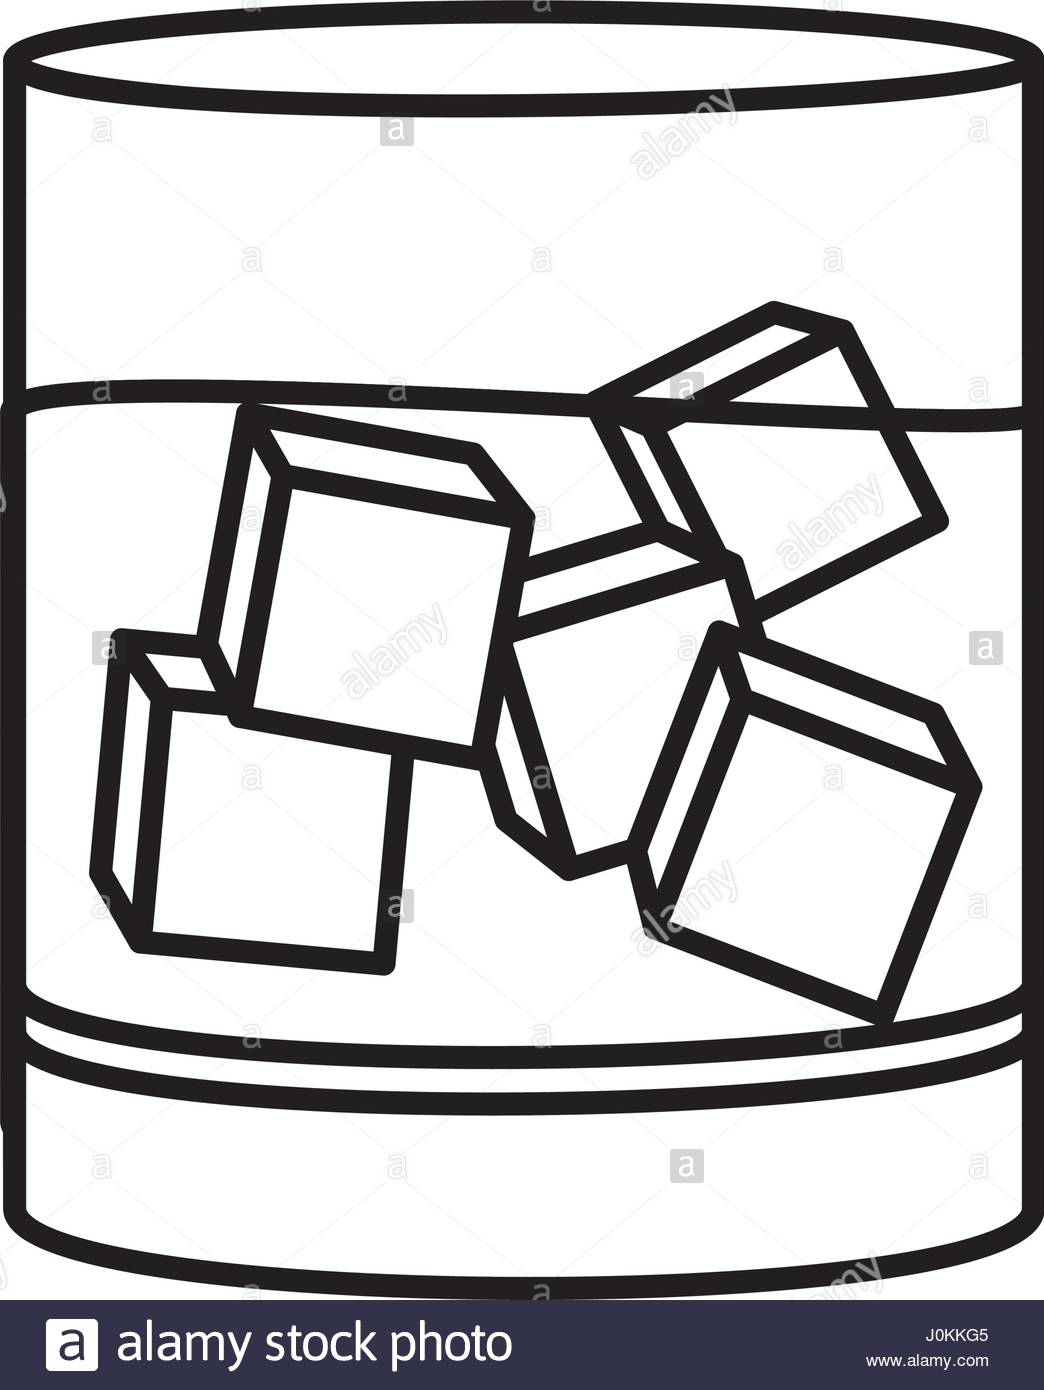 Ice Cubes Clipart.